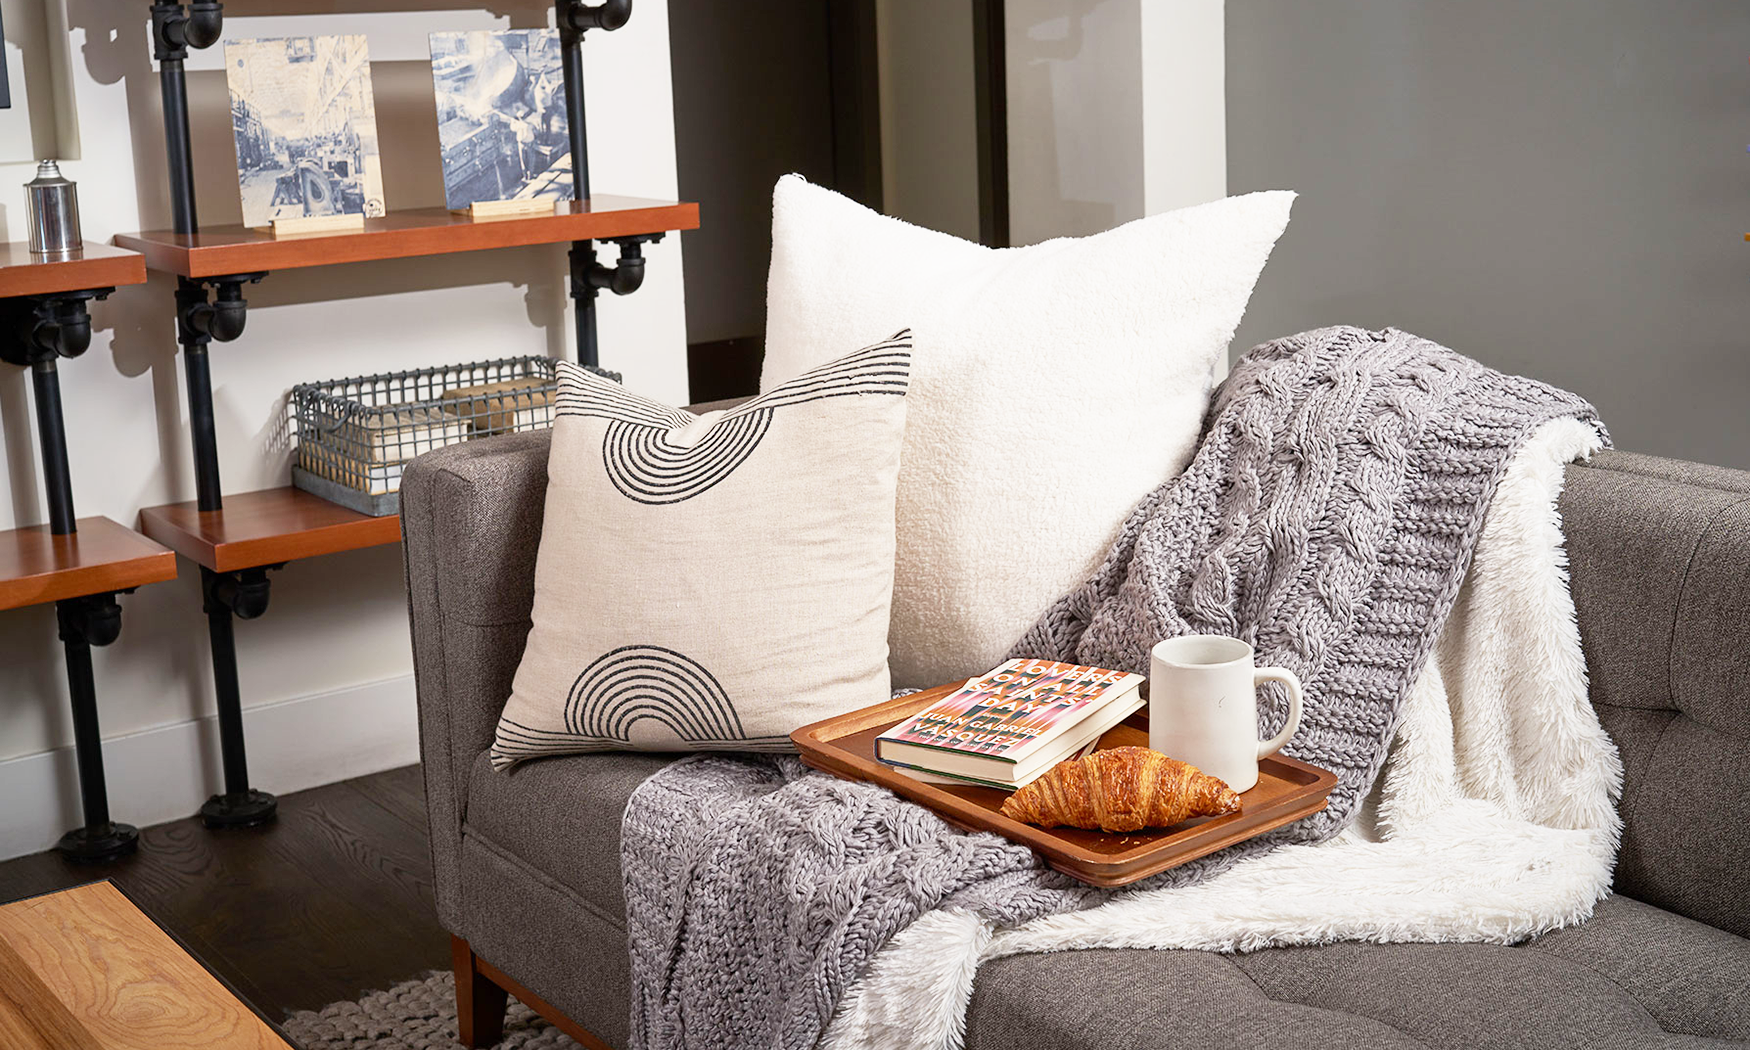 Embrace the Cozy: Hygge Your Home